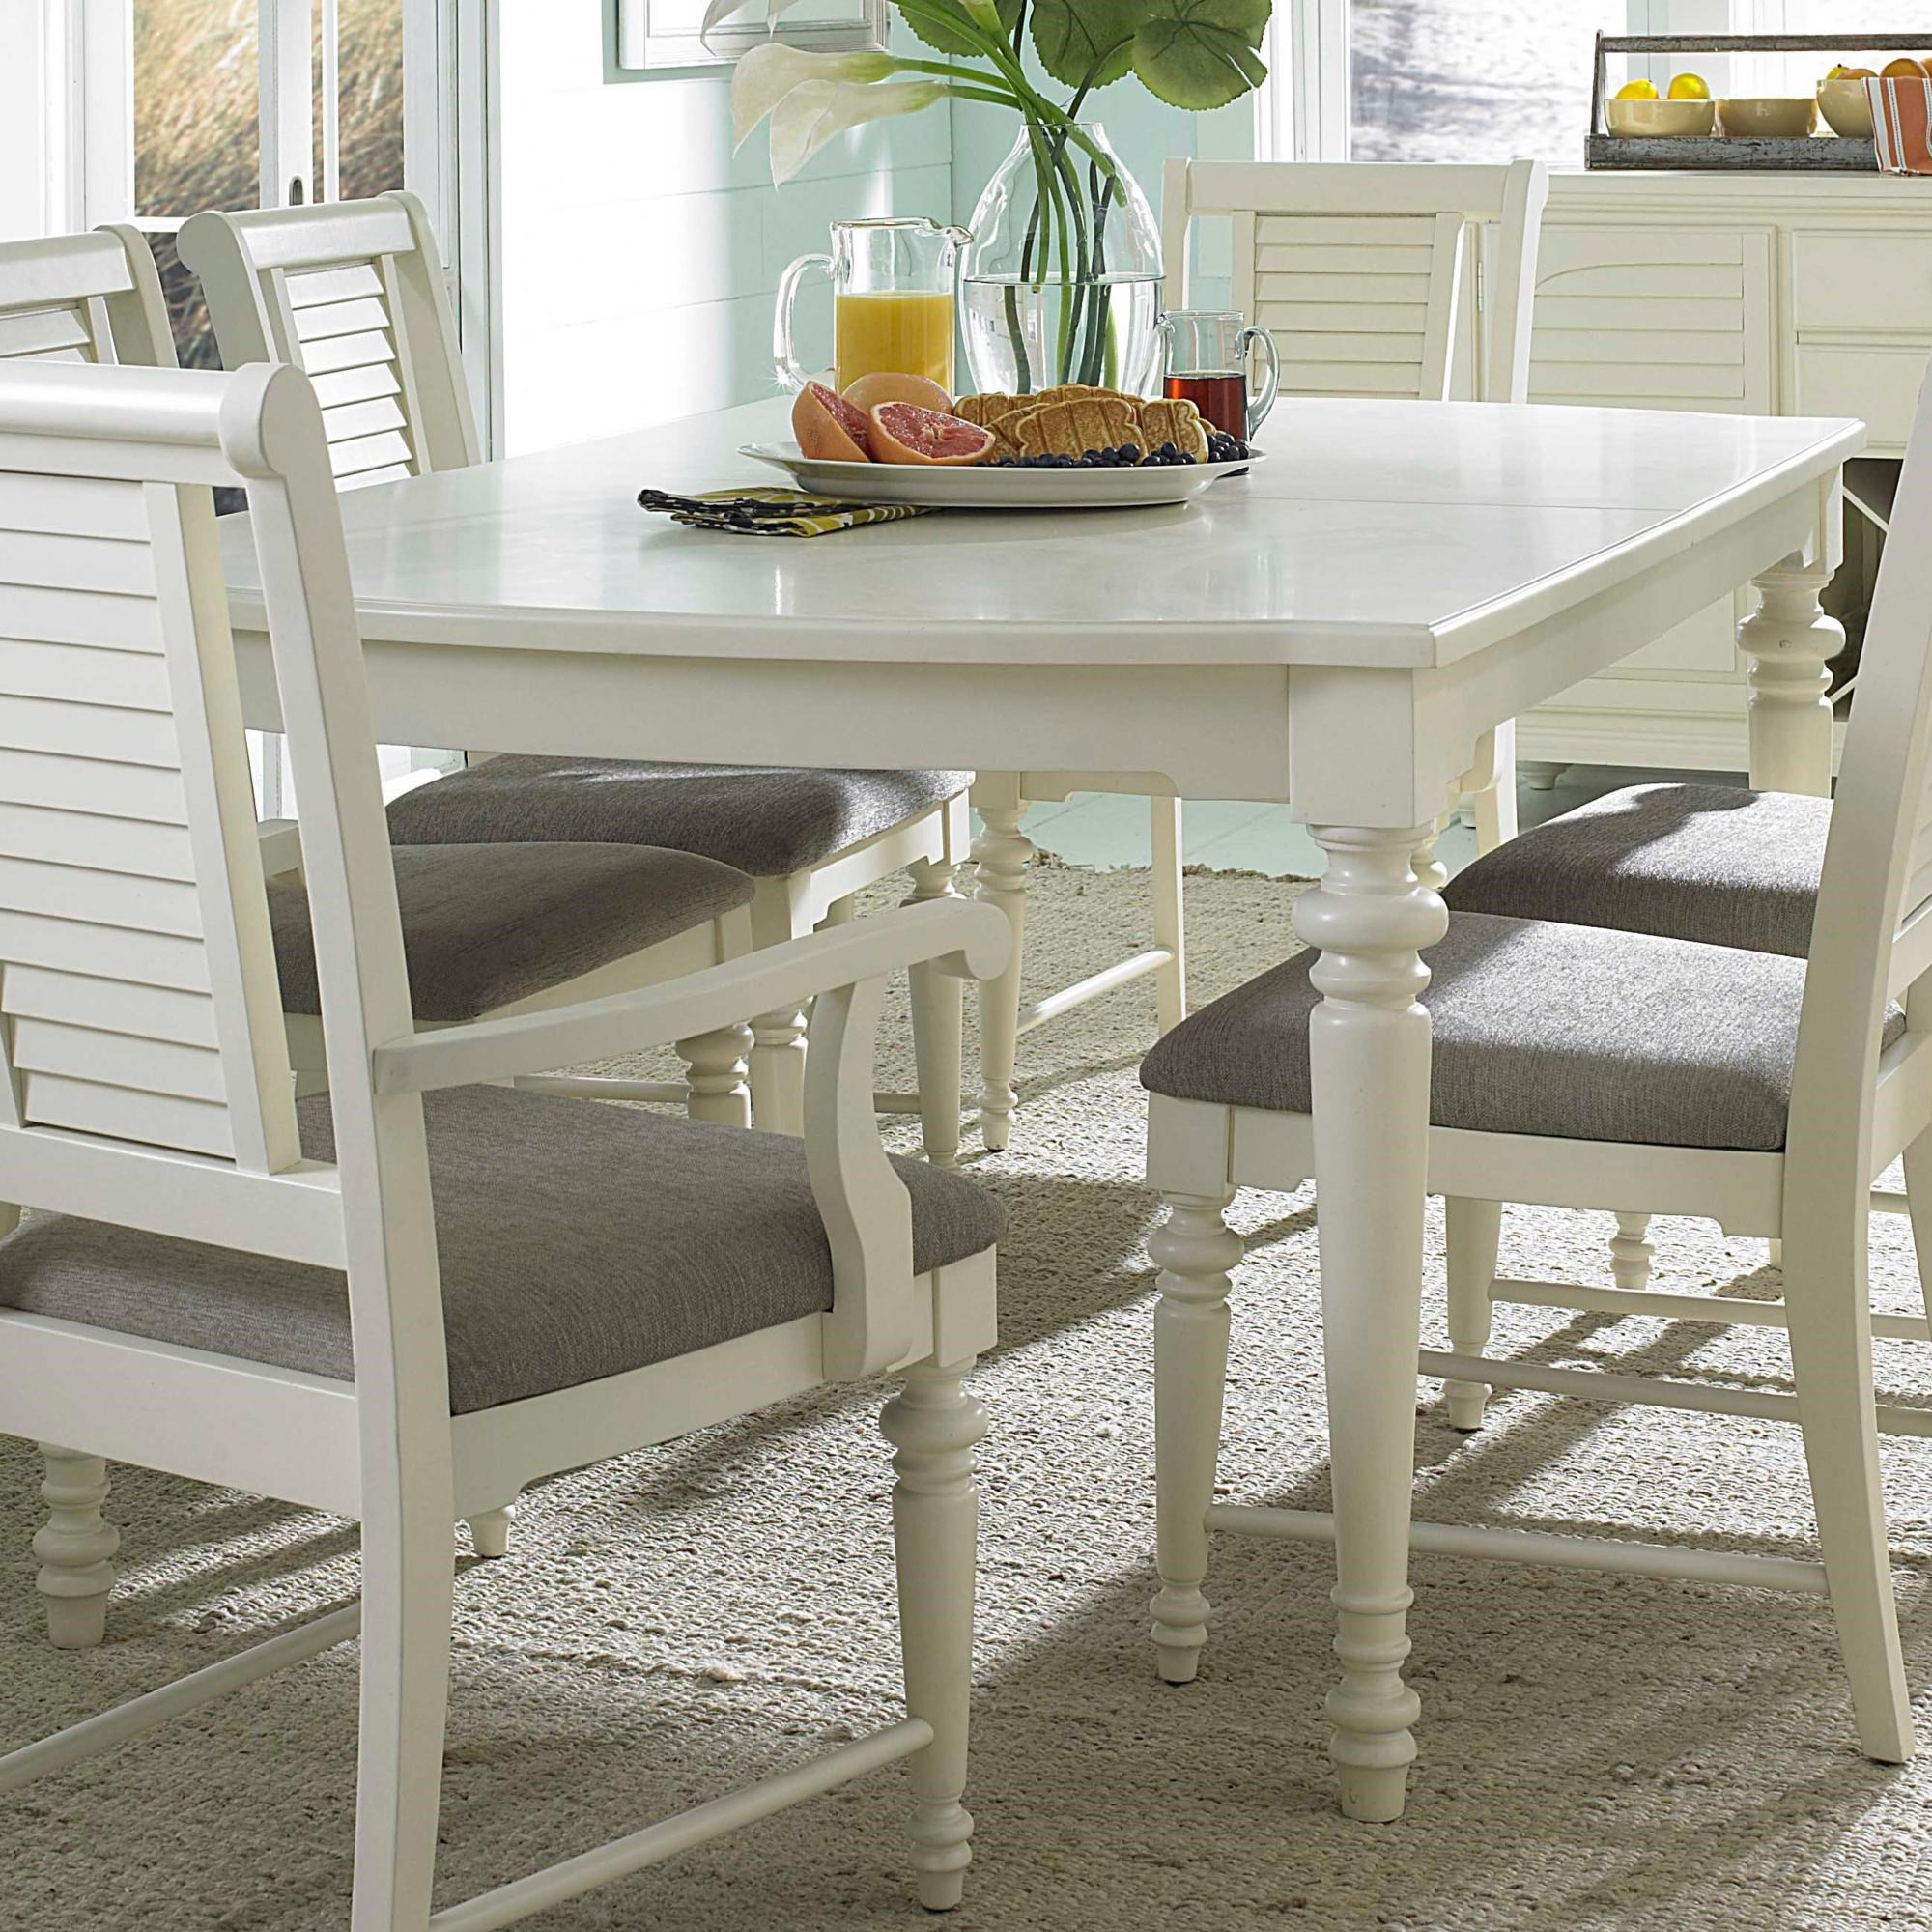 Attractive Broyhill Furniture SeabrookeLeg Dining Table ...